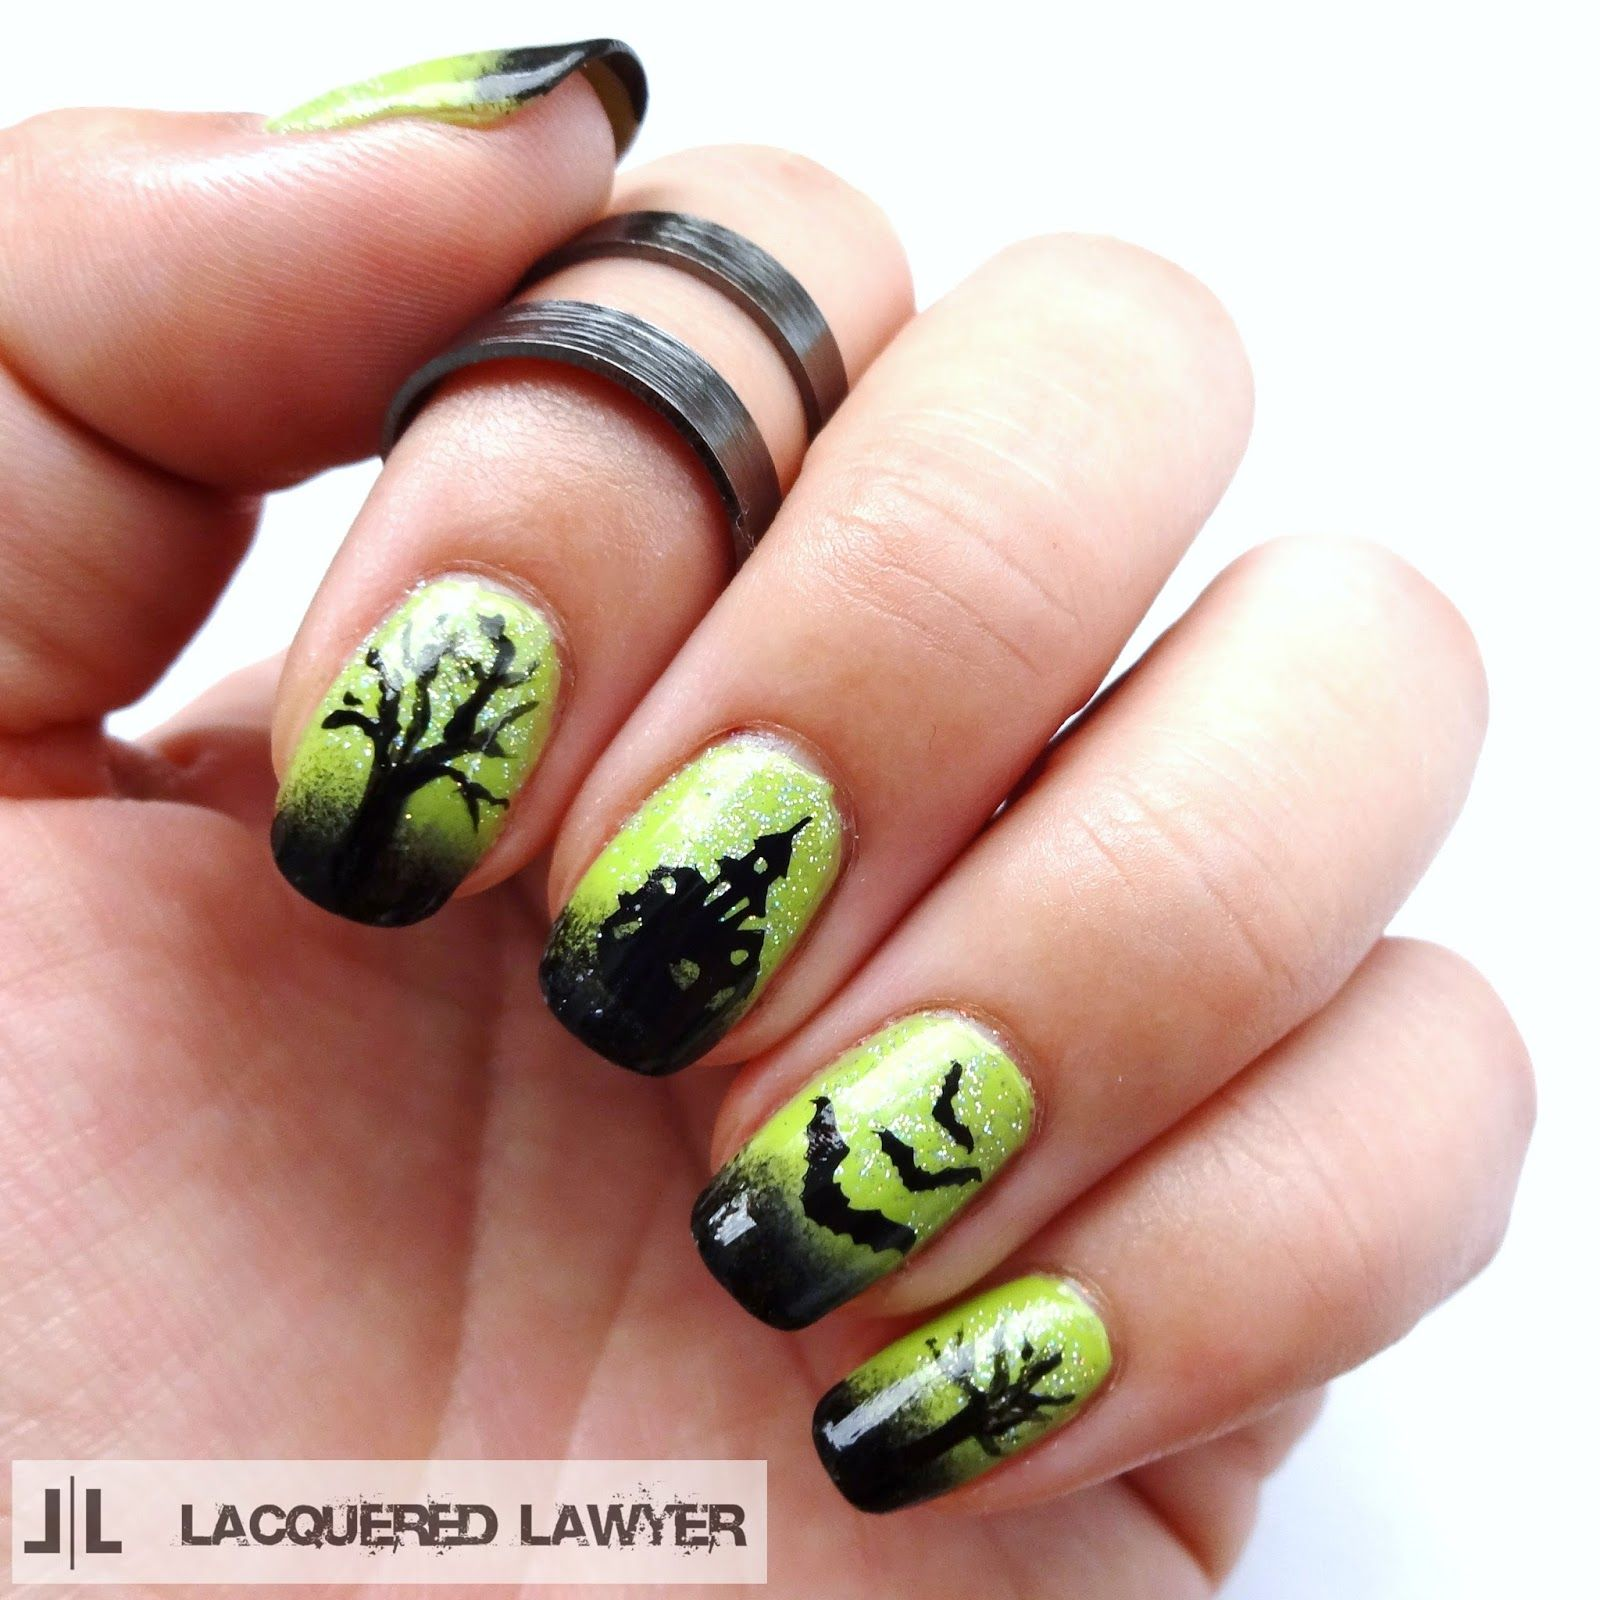 Lacquered Lawyer   Nail Art Blog: Haunted House